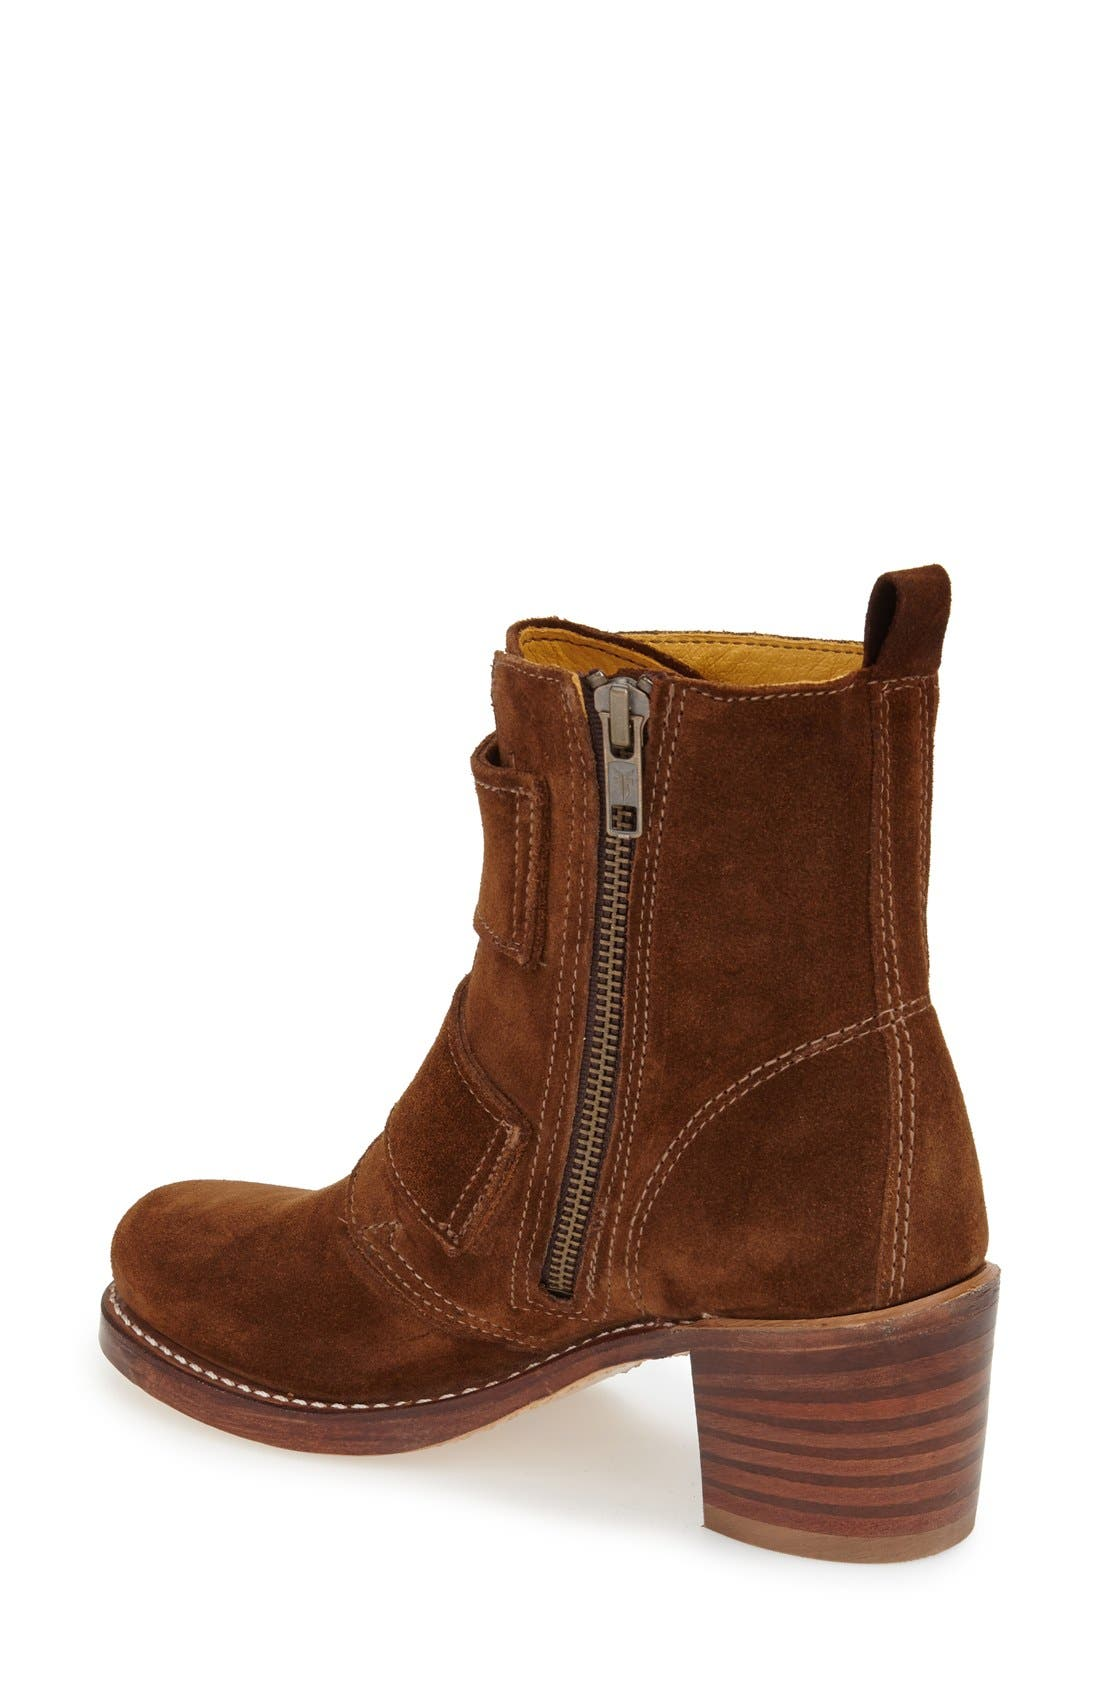 'Sabrina' Double Buckle Boot,                             Alternate thumbnail 2, color,                             Wood Oiled Suede